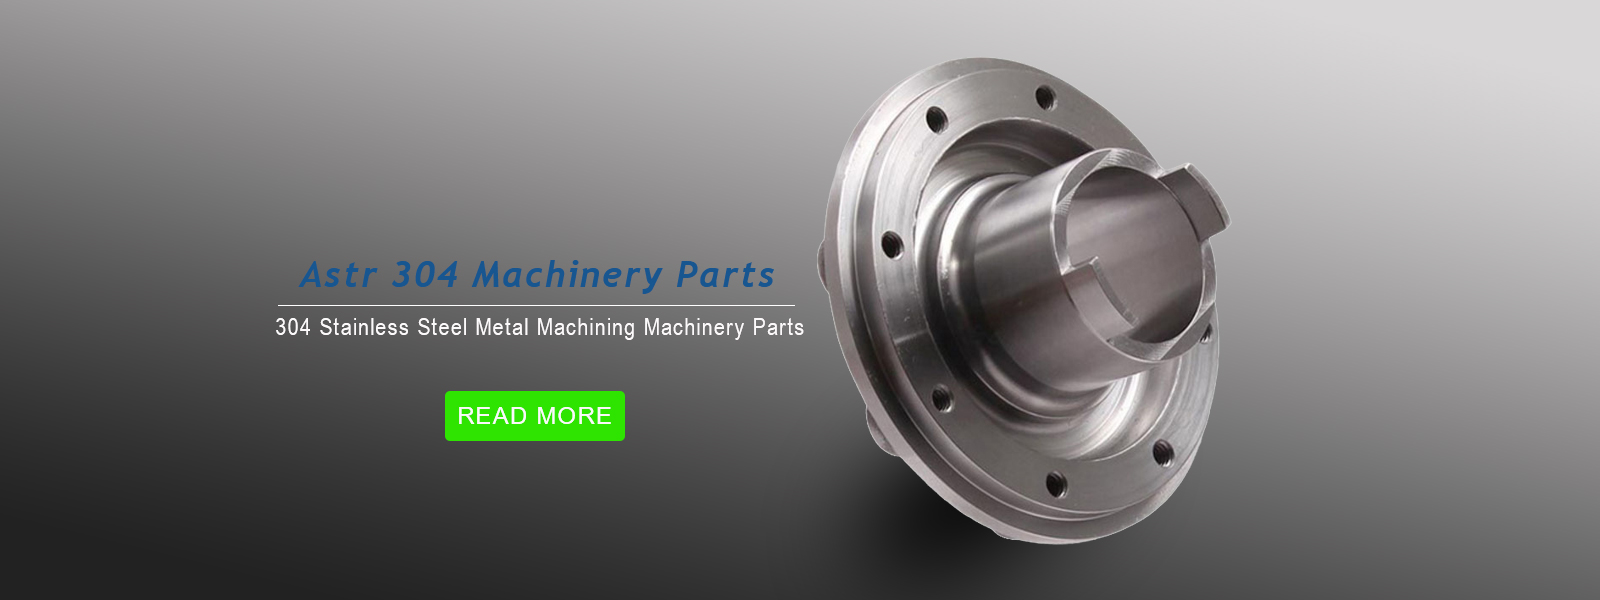 astr 304 machinery parts